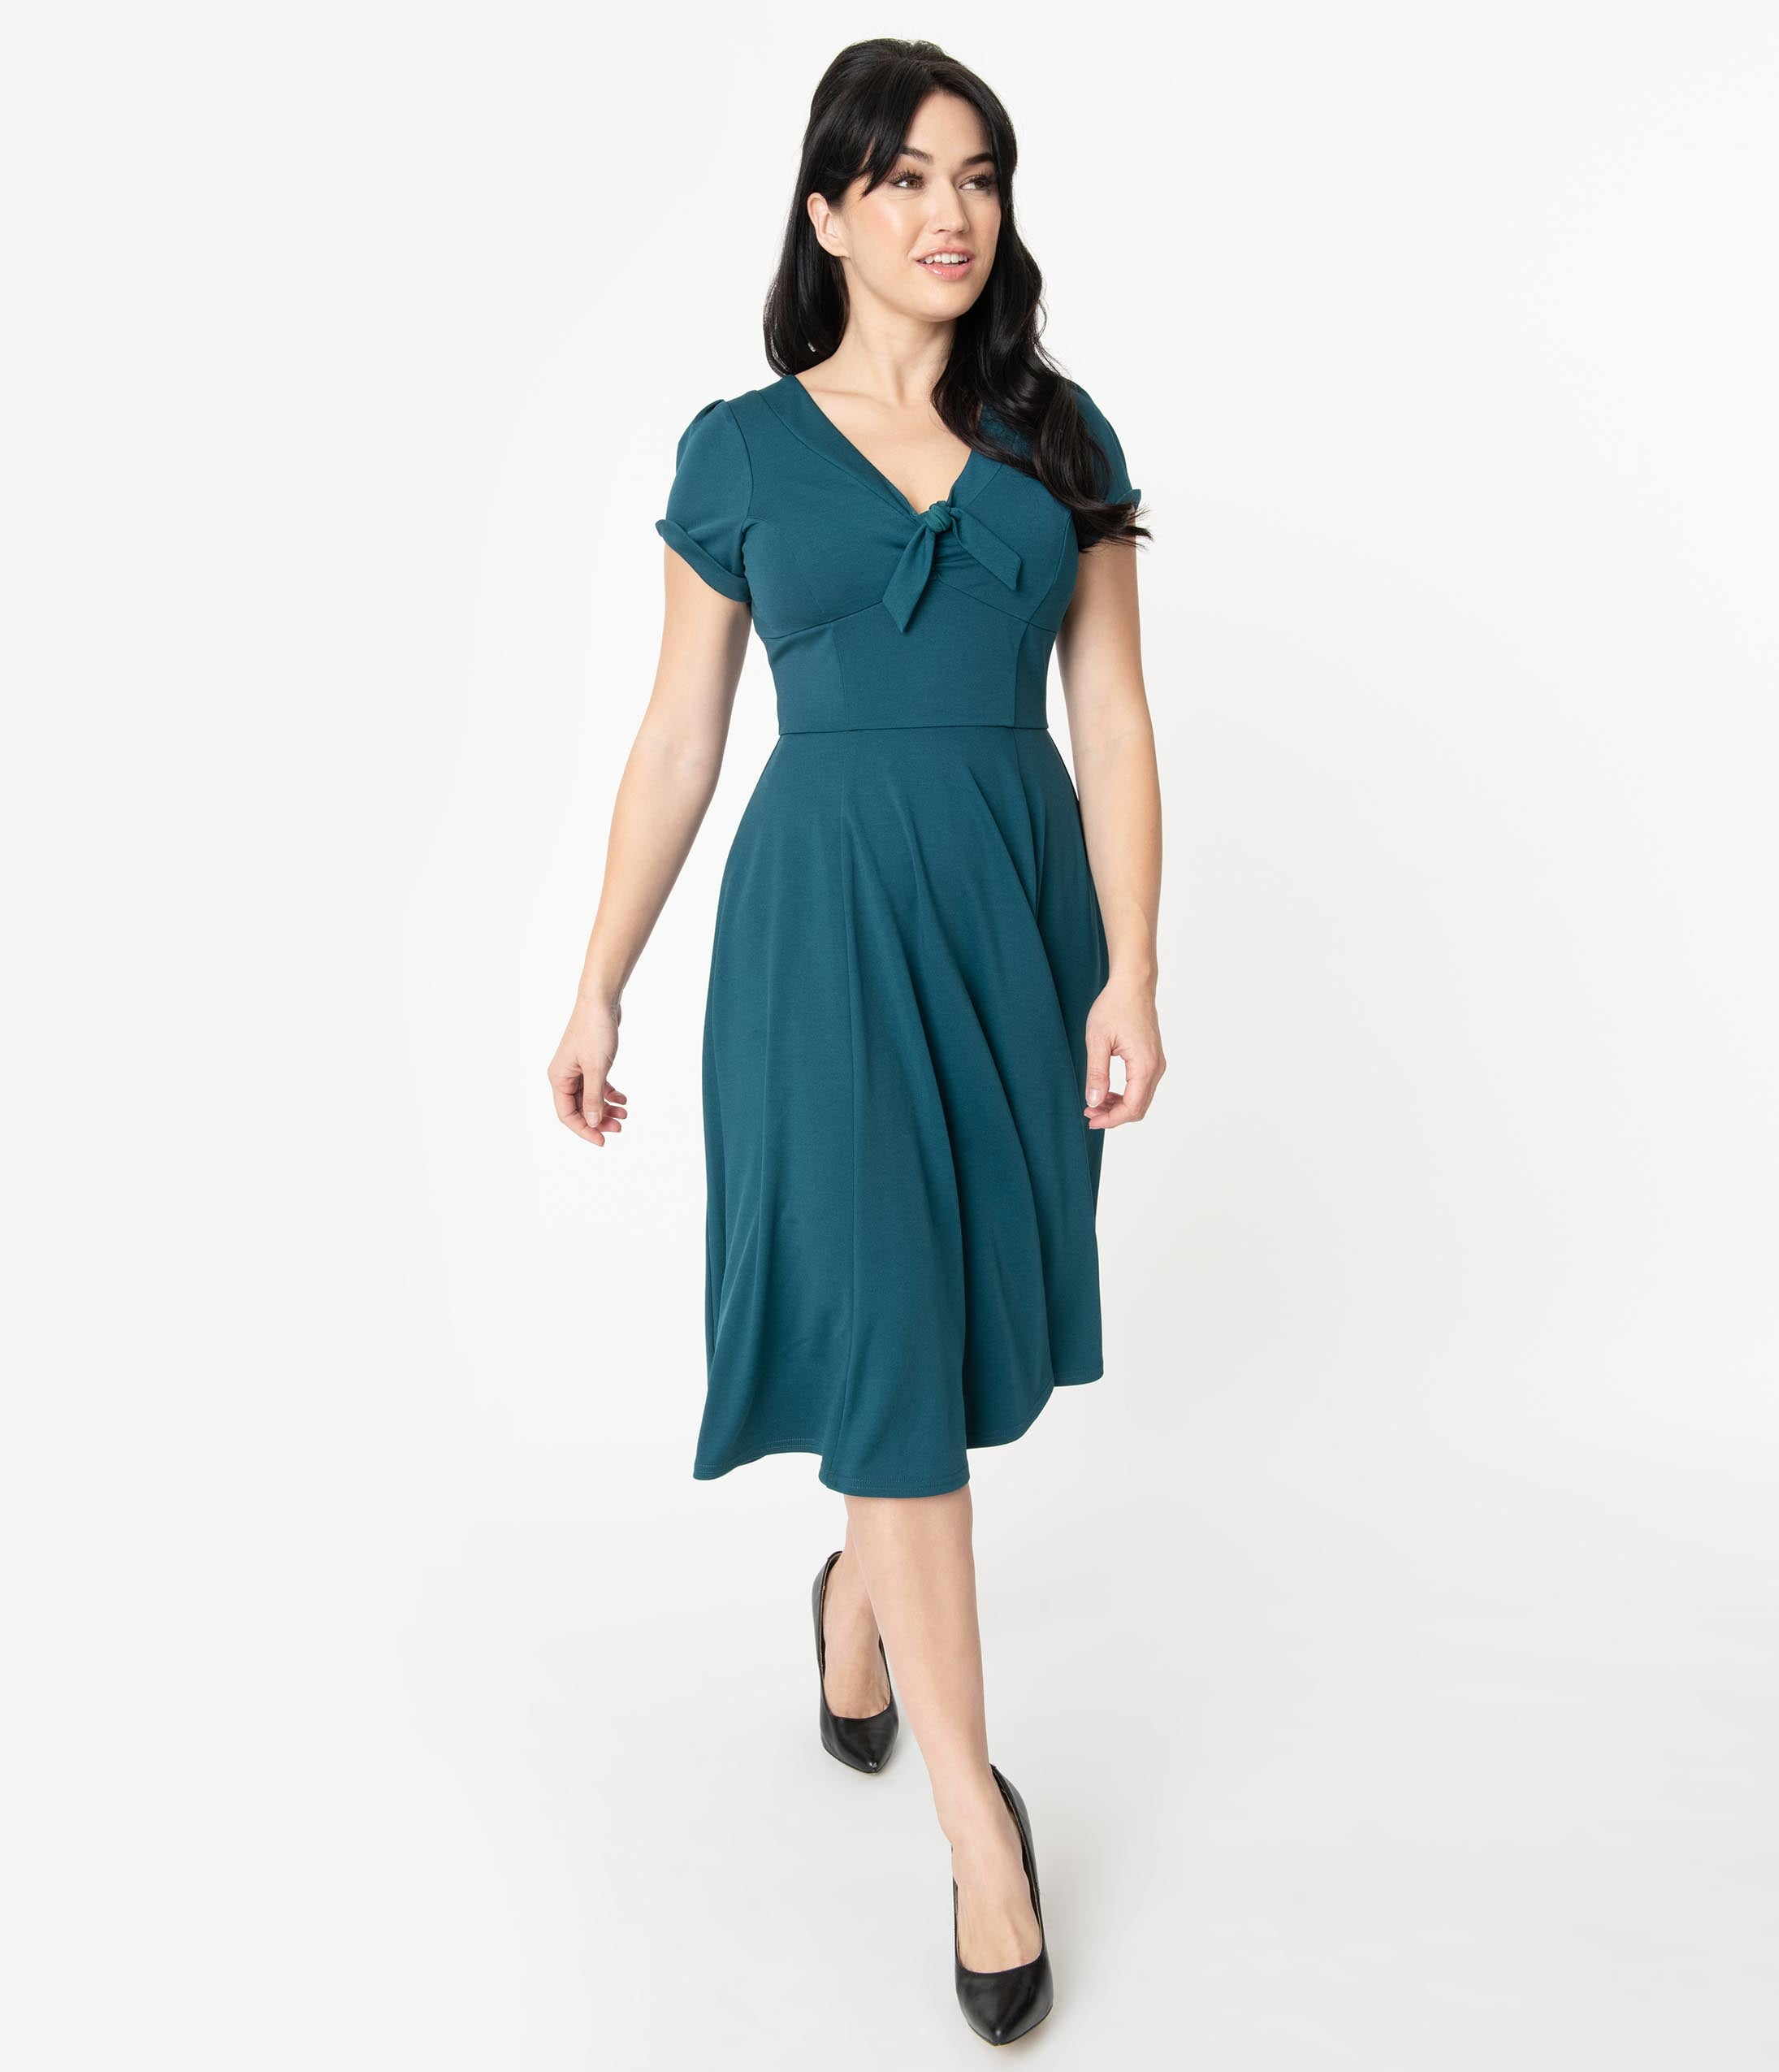 Swing Dance Clothing You Can Dance In Unique Vintage 1940S Teal Natalie Swing Dress $78.00 AT vintagedancer.com